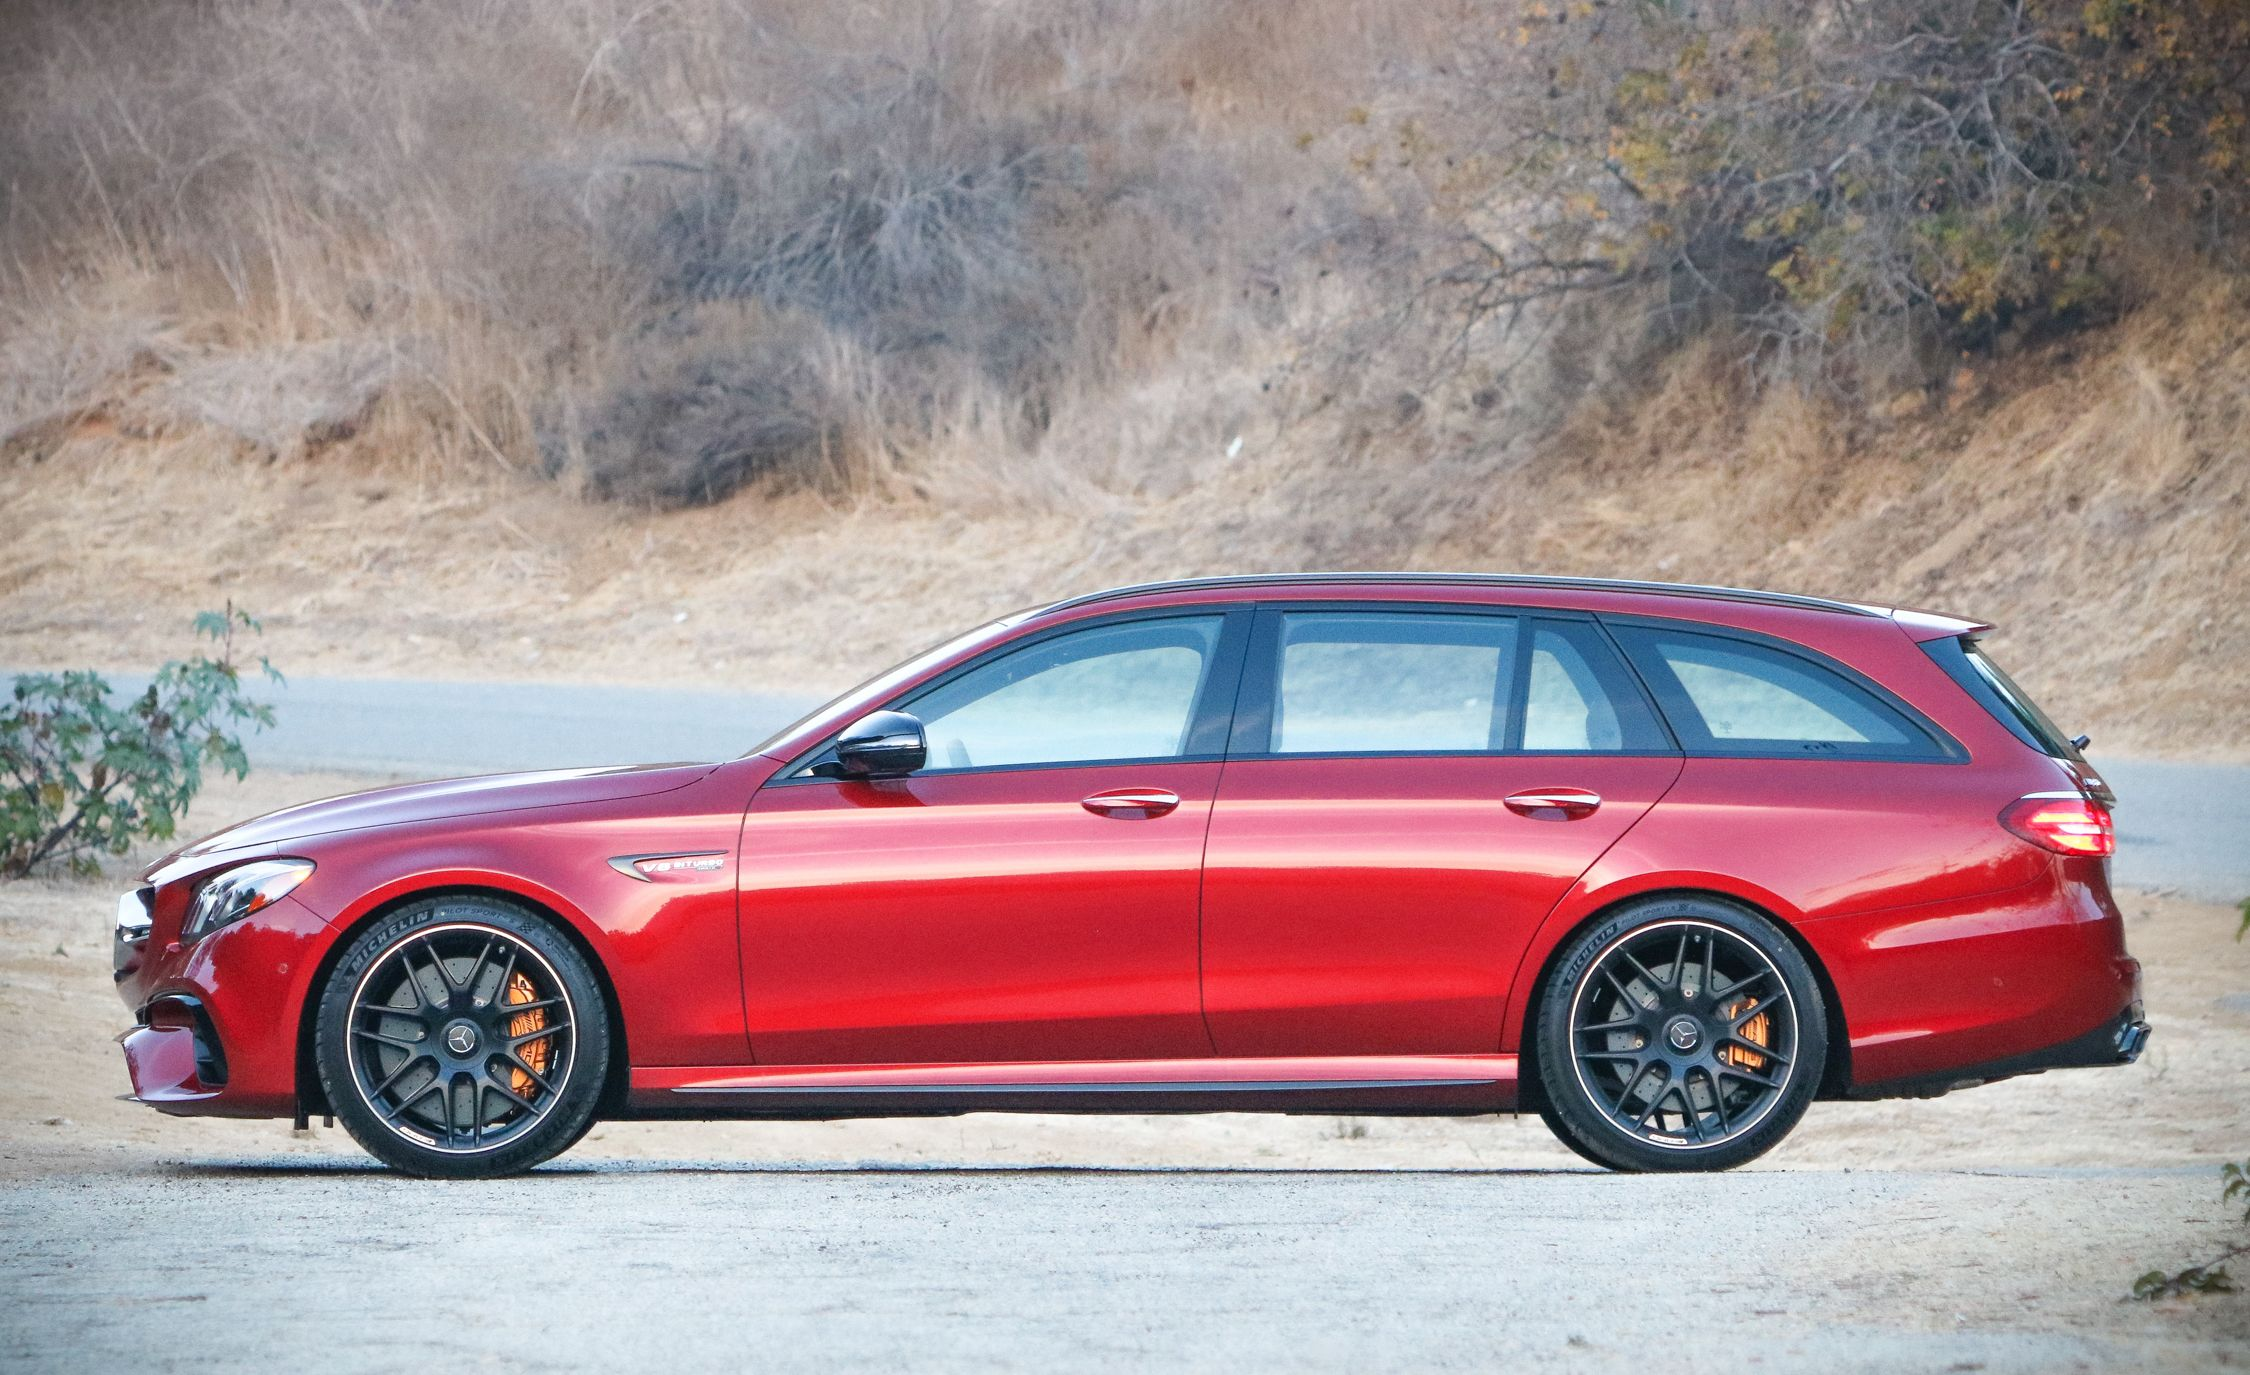 2019 Mercedes Amg E63 S Wagon Reviews Mercedes Amg E63 S Wagon